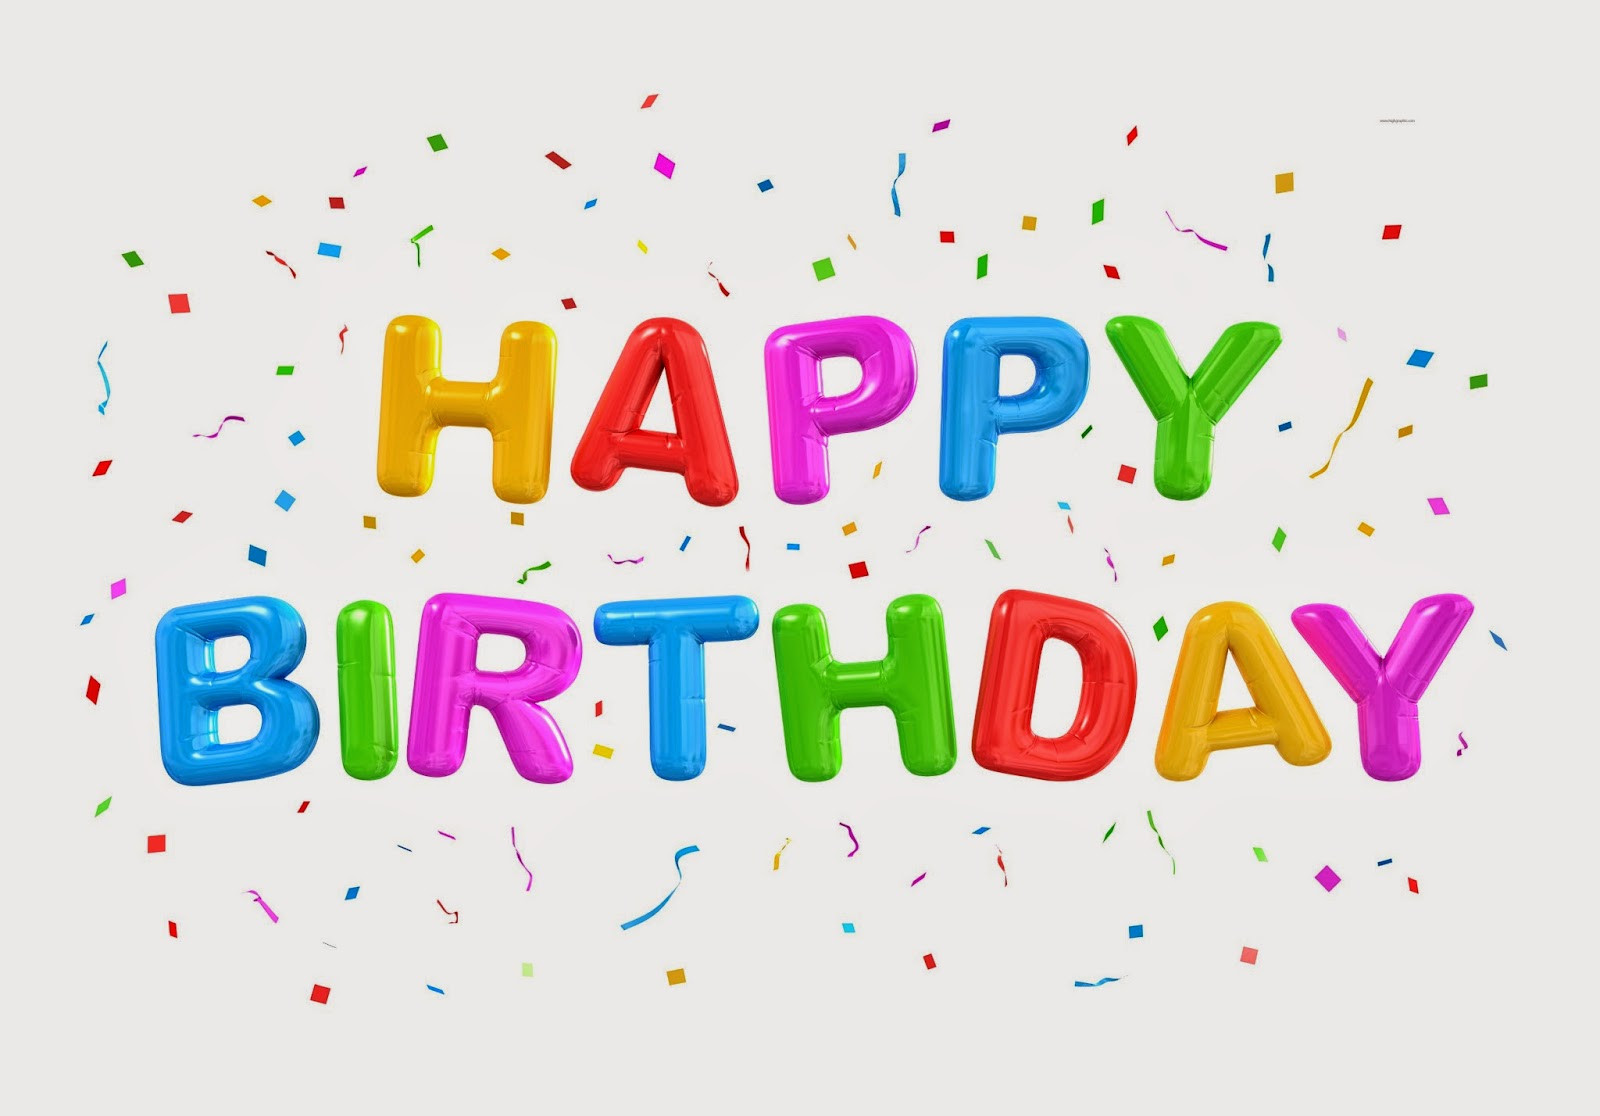 Best ideas about Happy Birthday Wishes Text . Save or Pin Happy Birthday wishes card images with cakes candles Now.